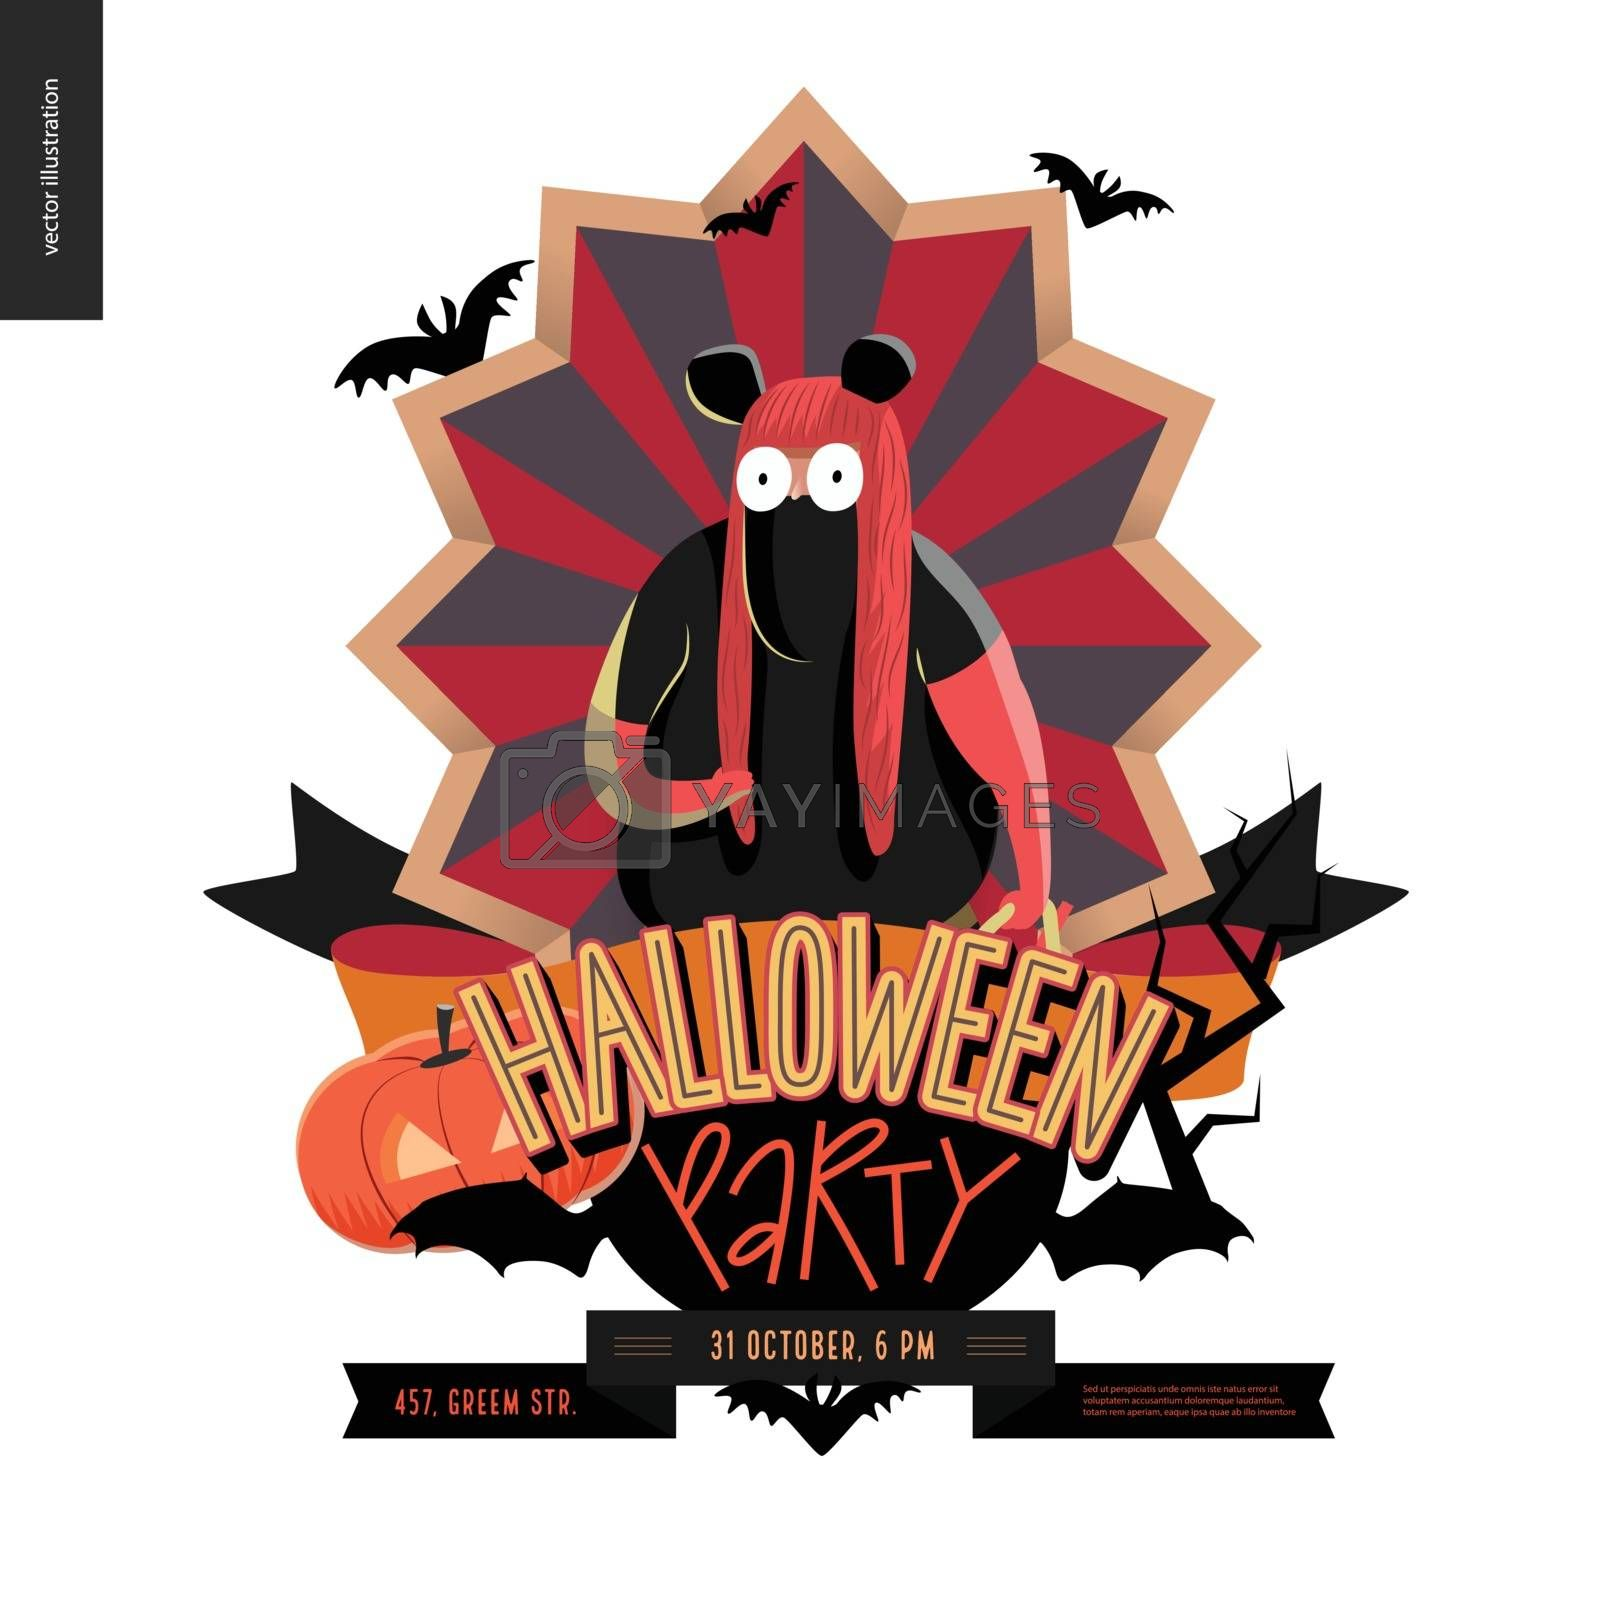 Halloween Party composed emblem invitation. Flat vectror cartoon illustrated design of a fat girl wearing Minnie Mouse costume, on striped shield, bats, pumpkin jack-o-lantern, ribbon, lettering